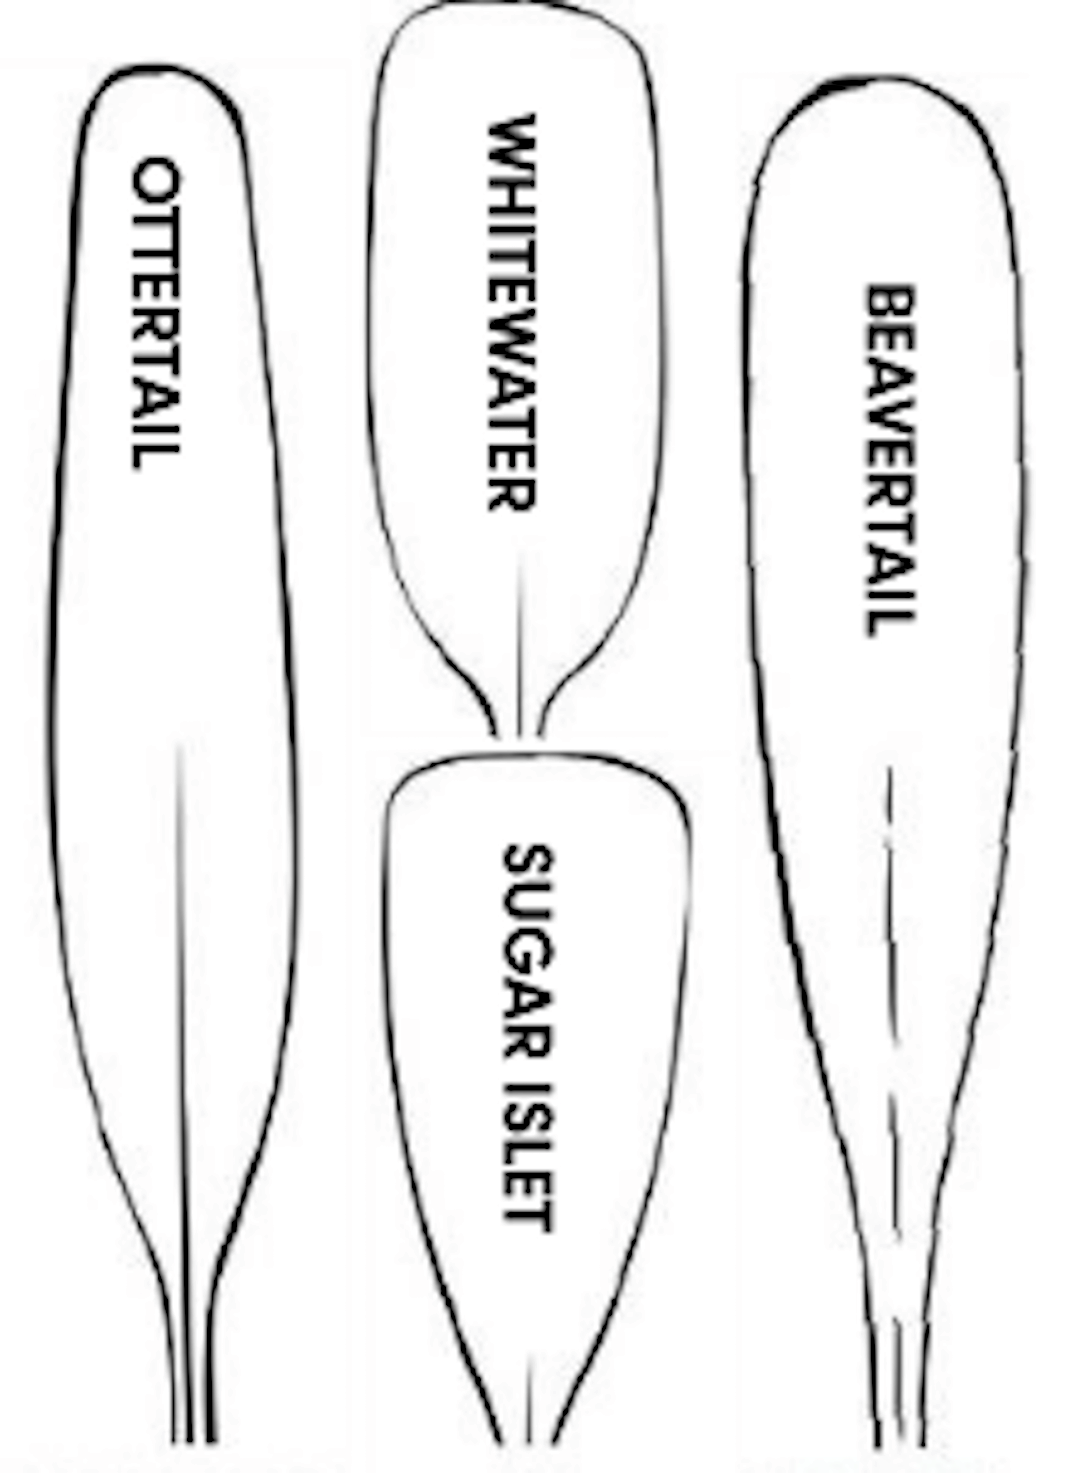 Four different shapes of paddle blades